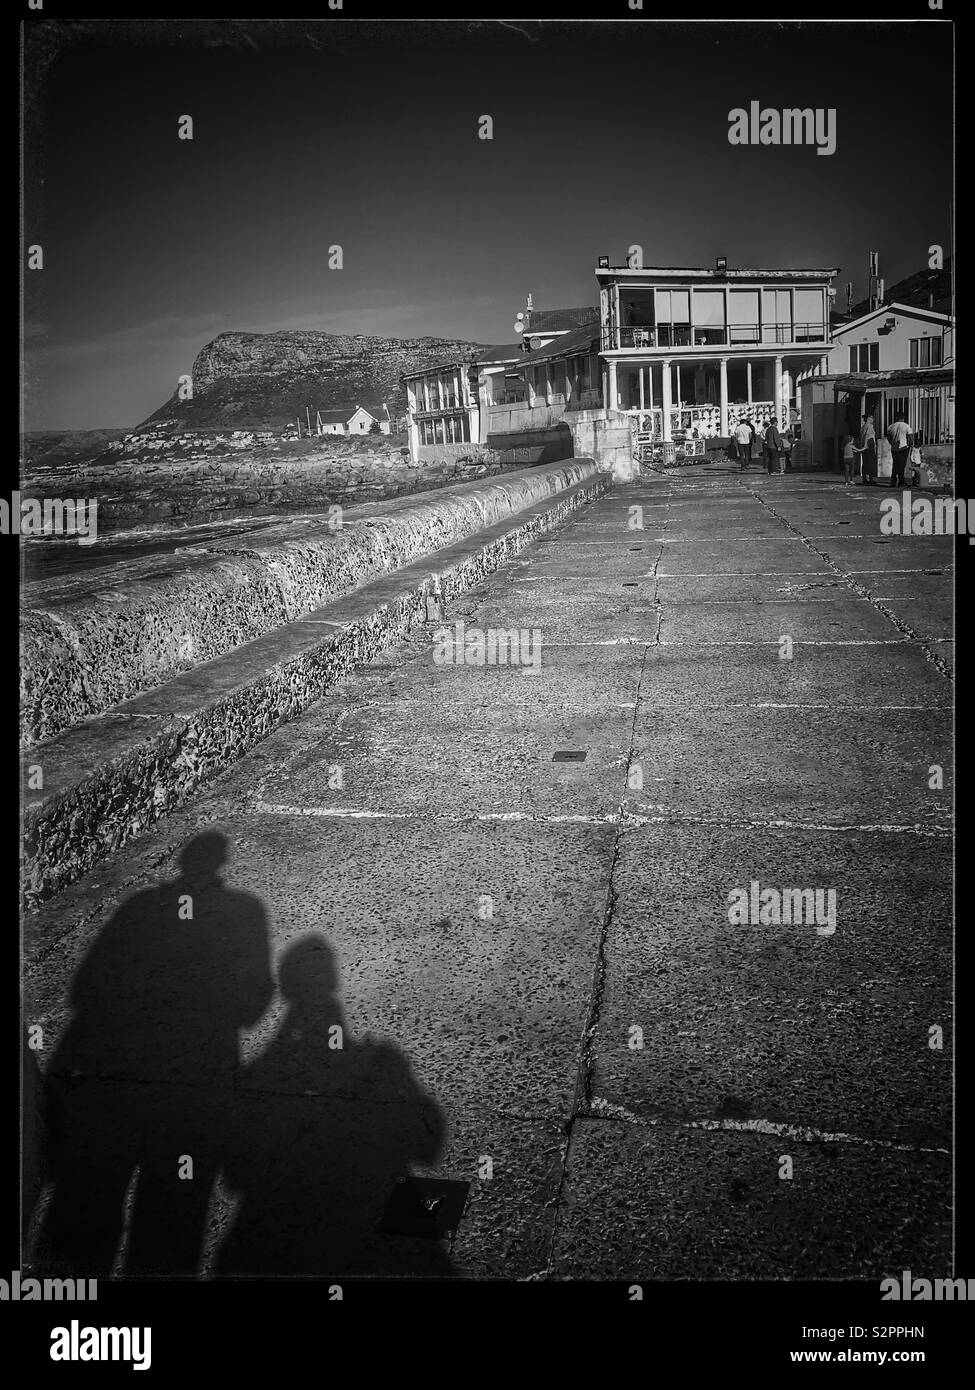 Shadows of two people walking along promenade at Kalk Bay Harbour, South Africa. - Stock Image